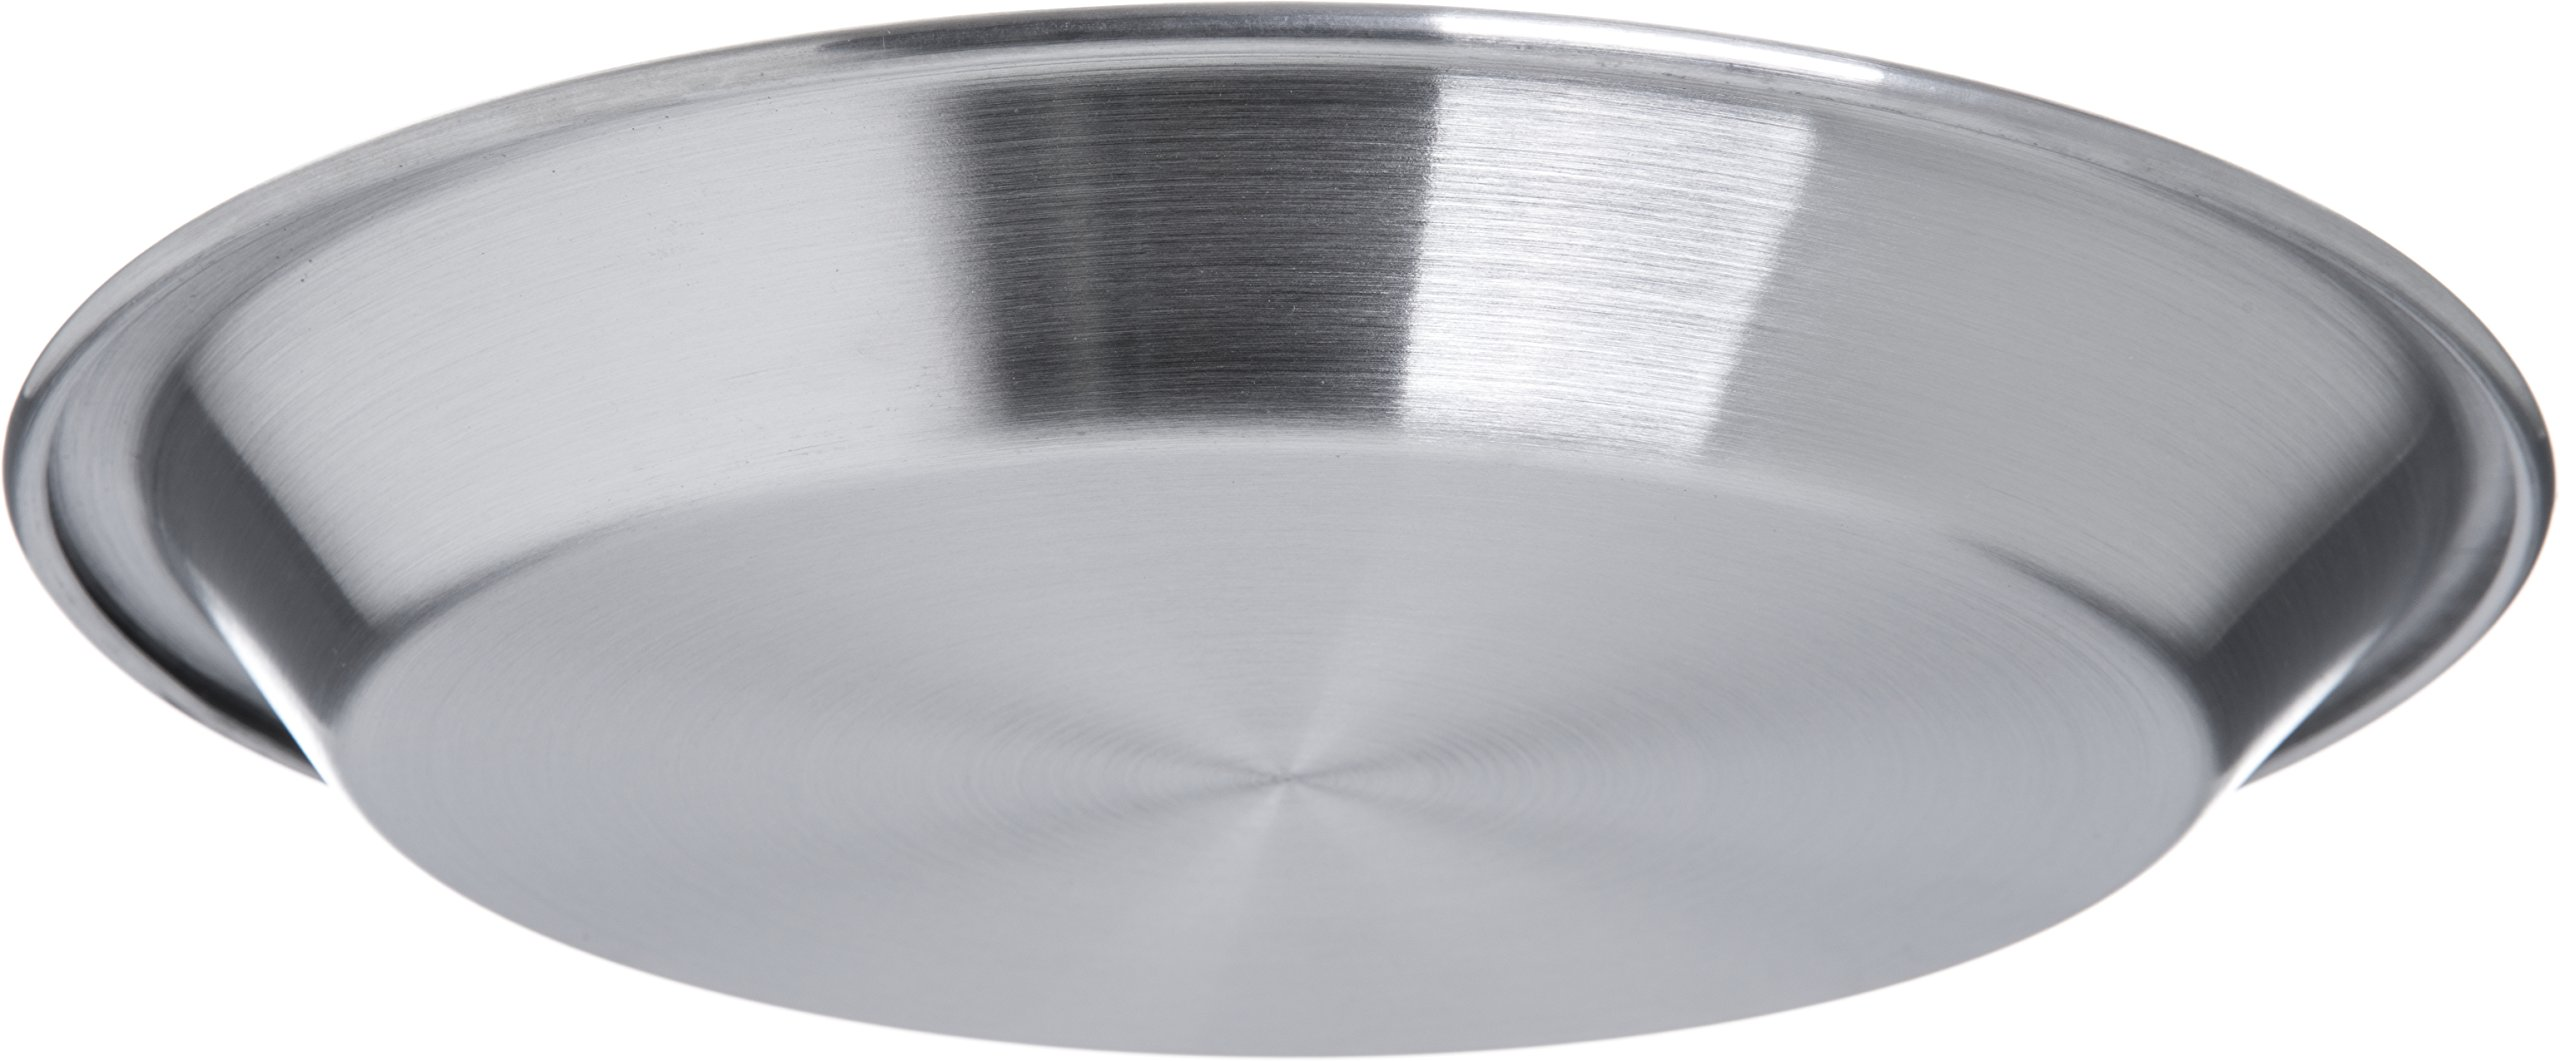 Carlisle 60322 Pie Pan, 9'', Aluminum (Pack of 24) by Carlisle (Image #4)